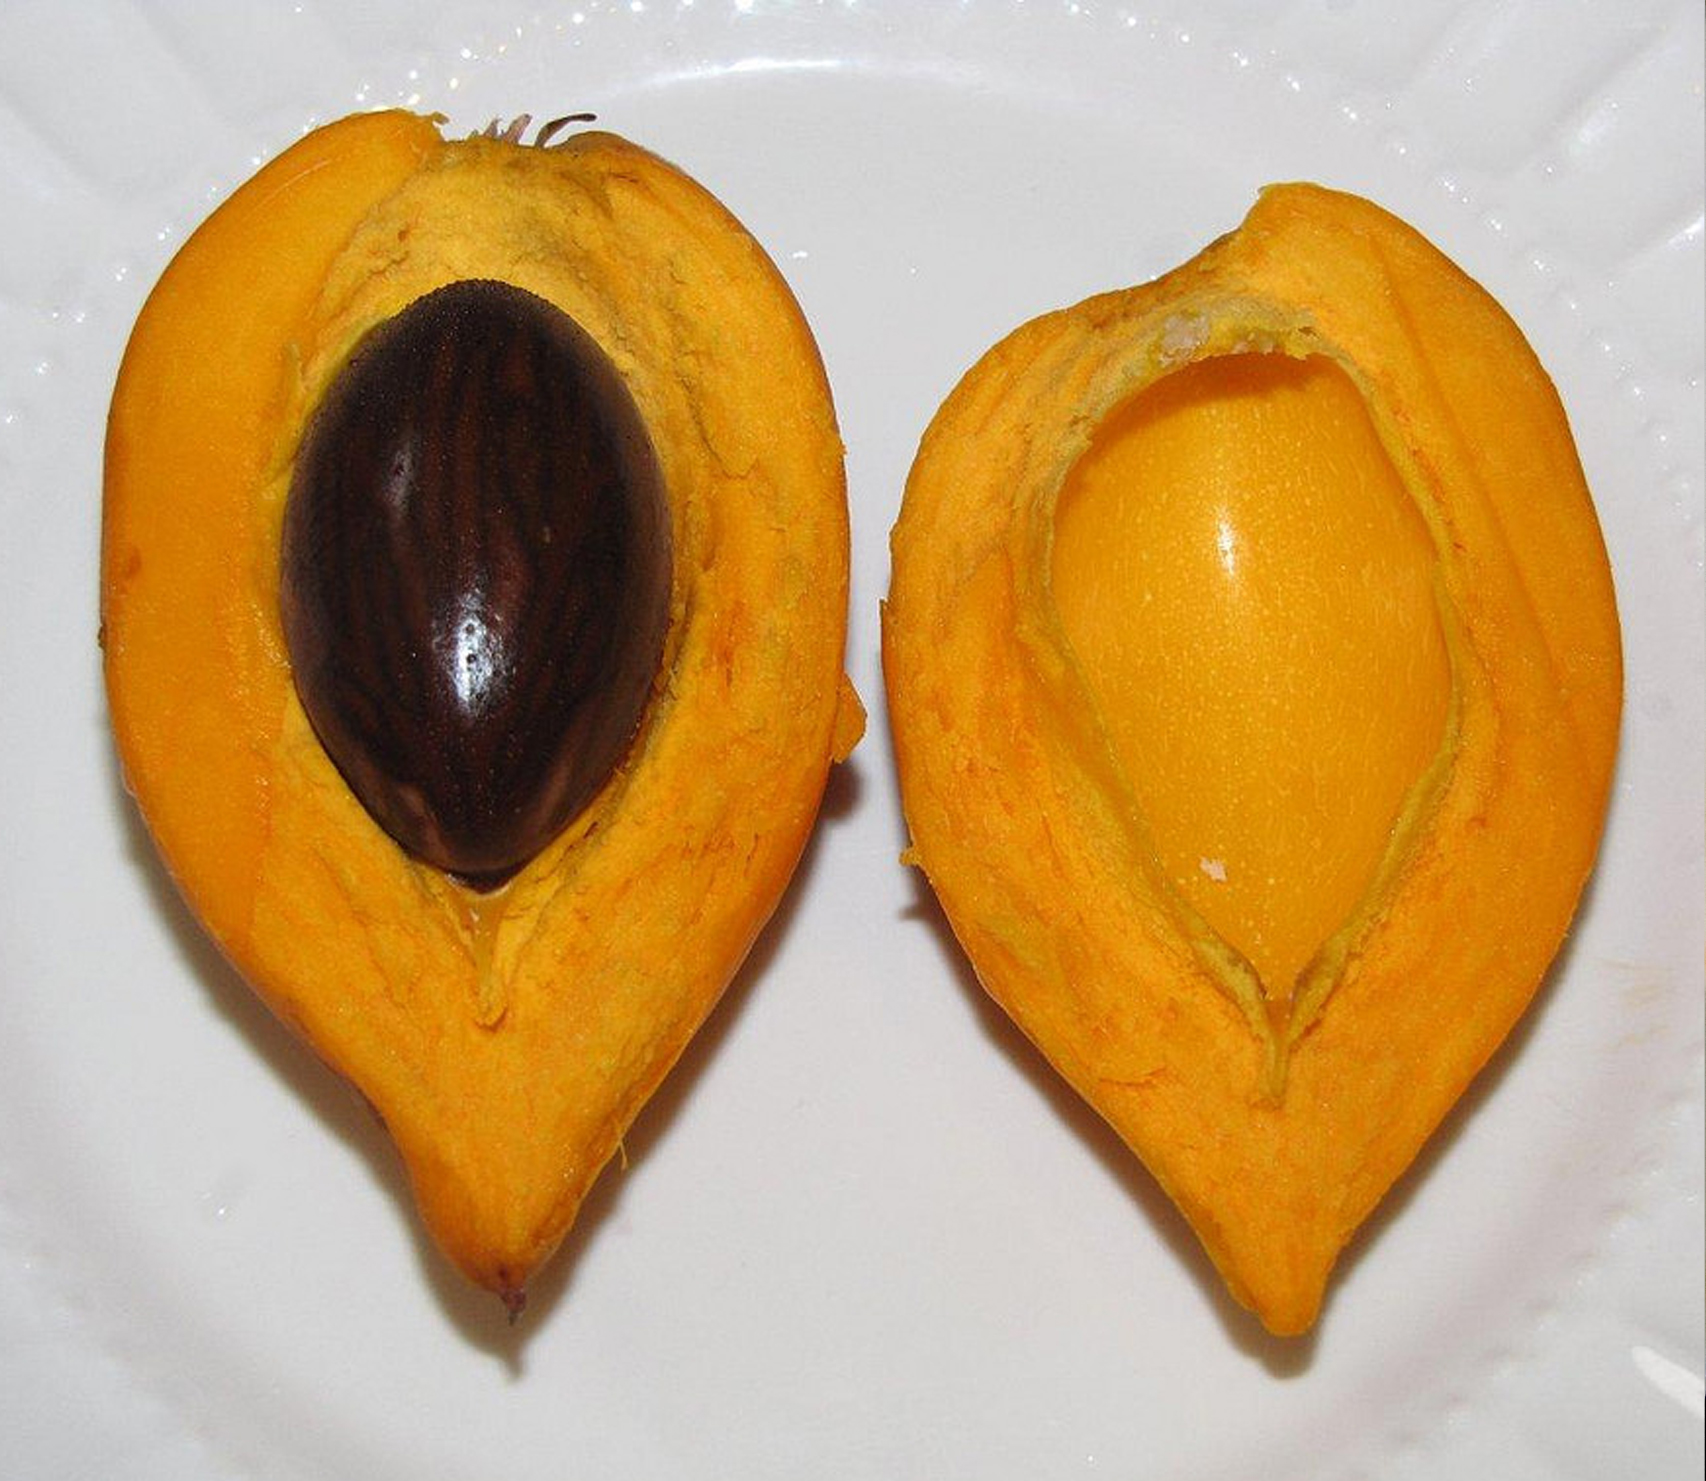 Egg_Fruit-1.jpg